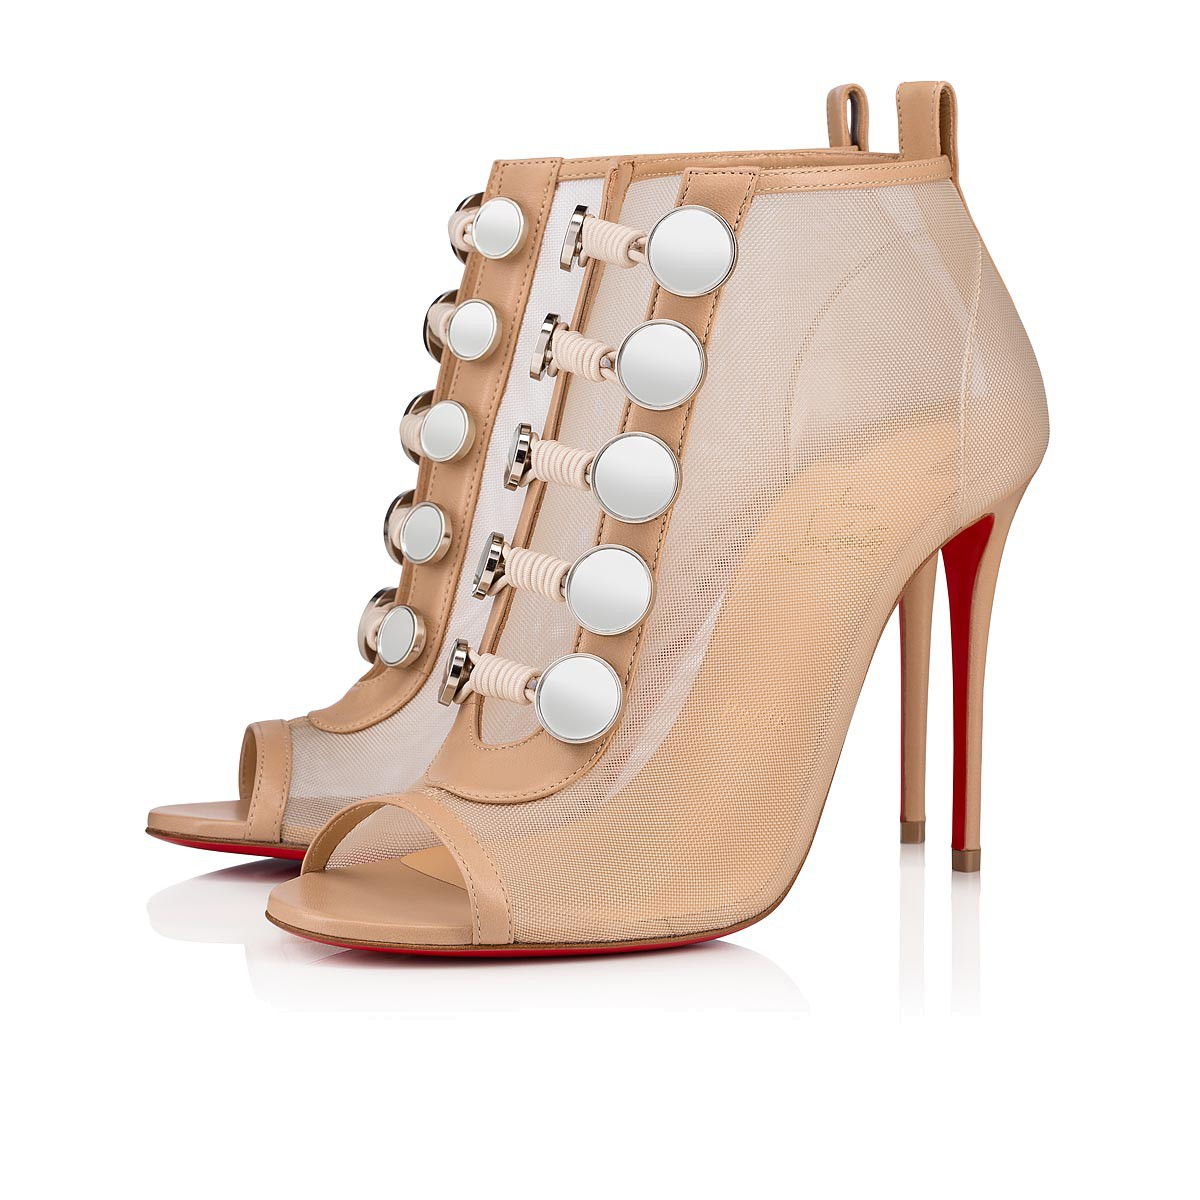 Shoes - Marikate - Christian Louboutin